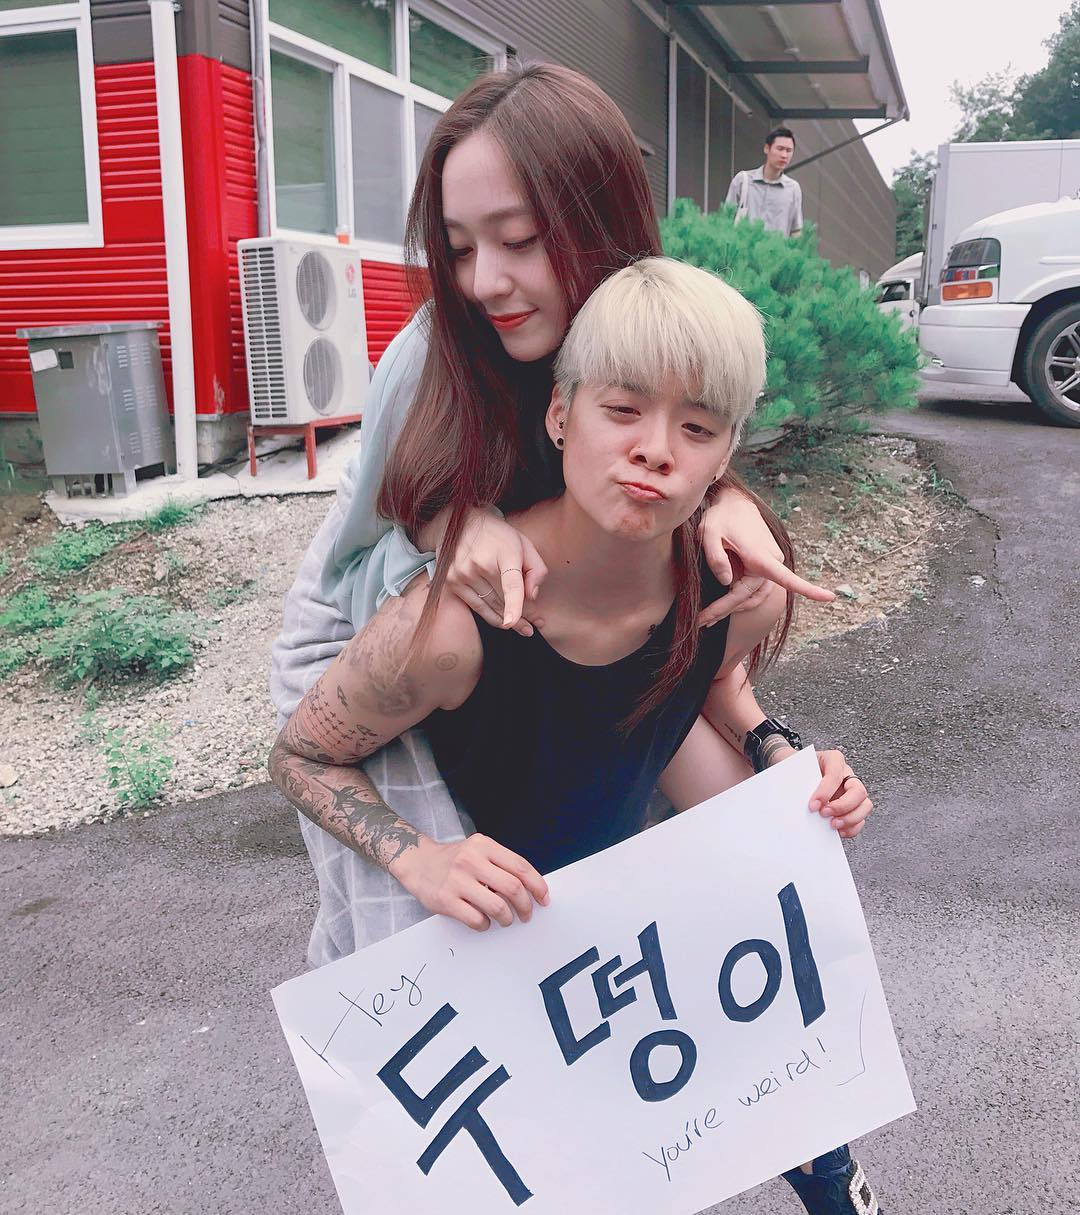 fx amber first impression members 3